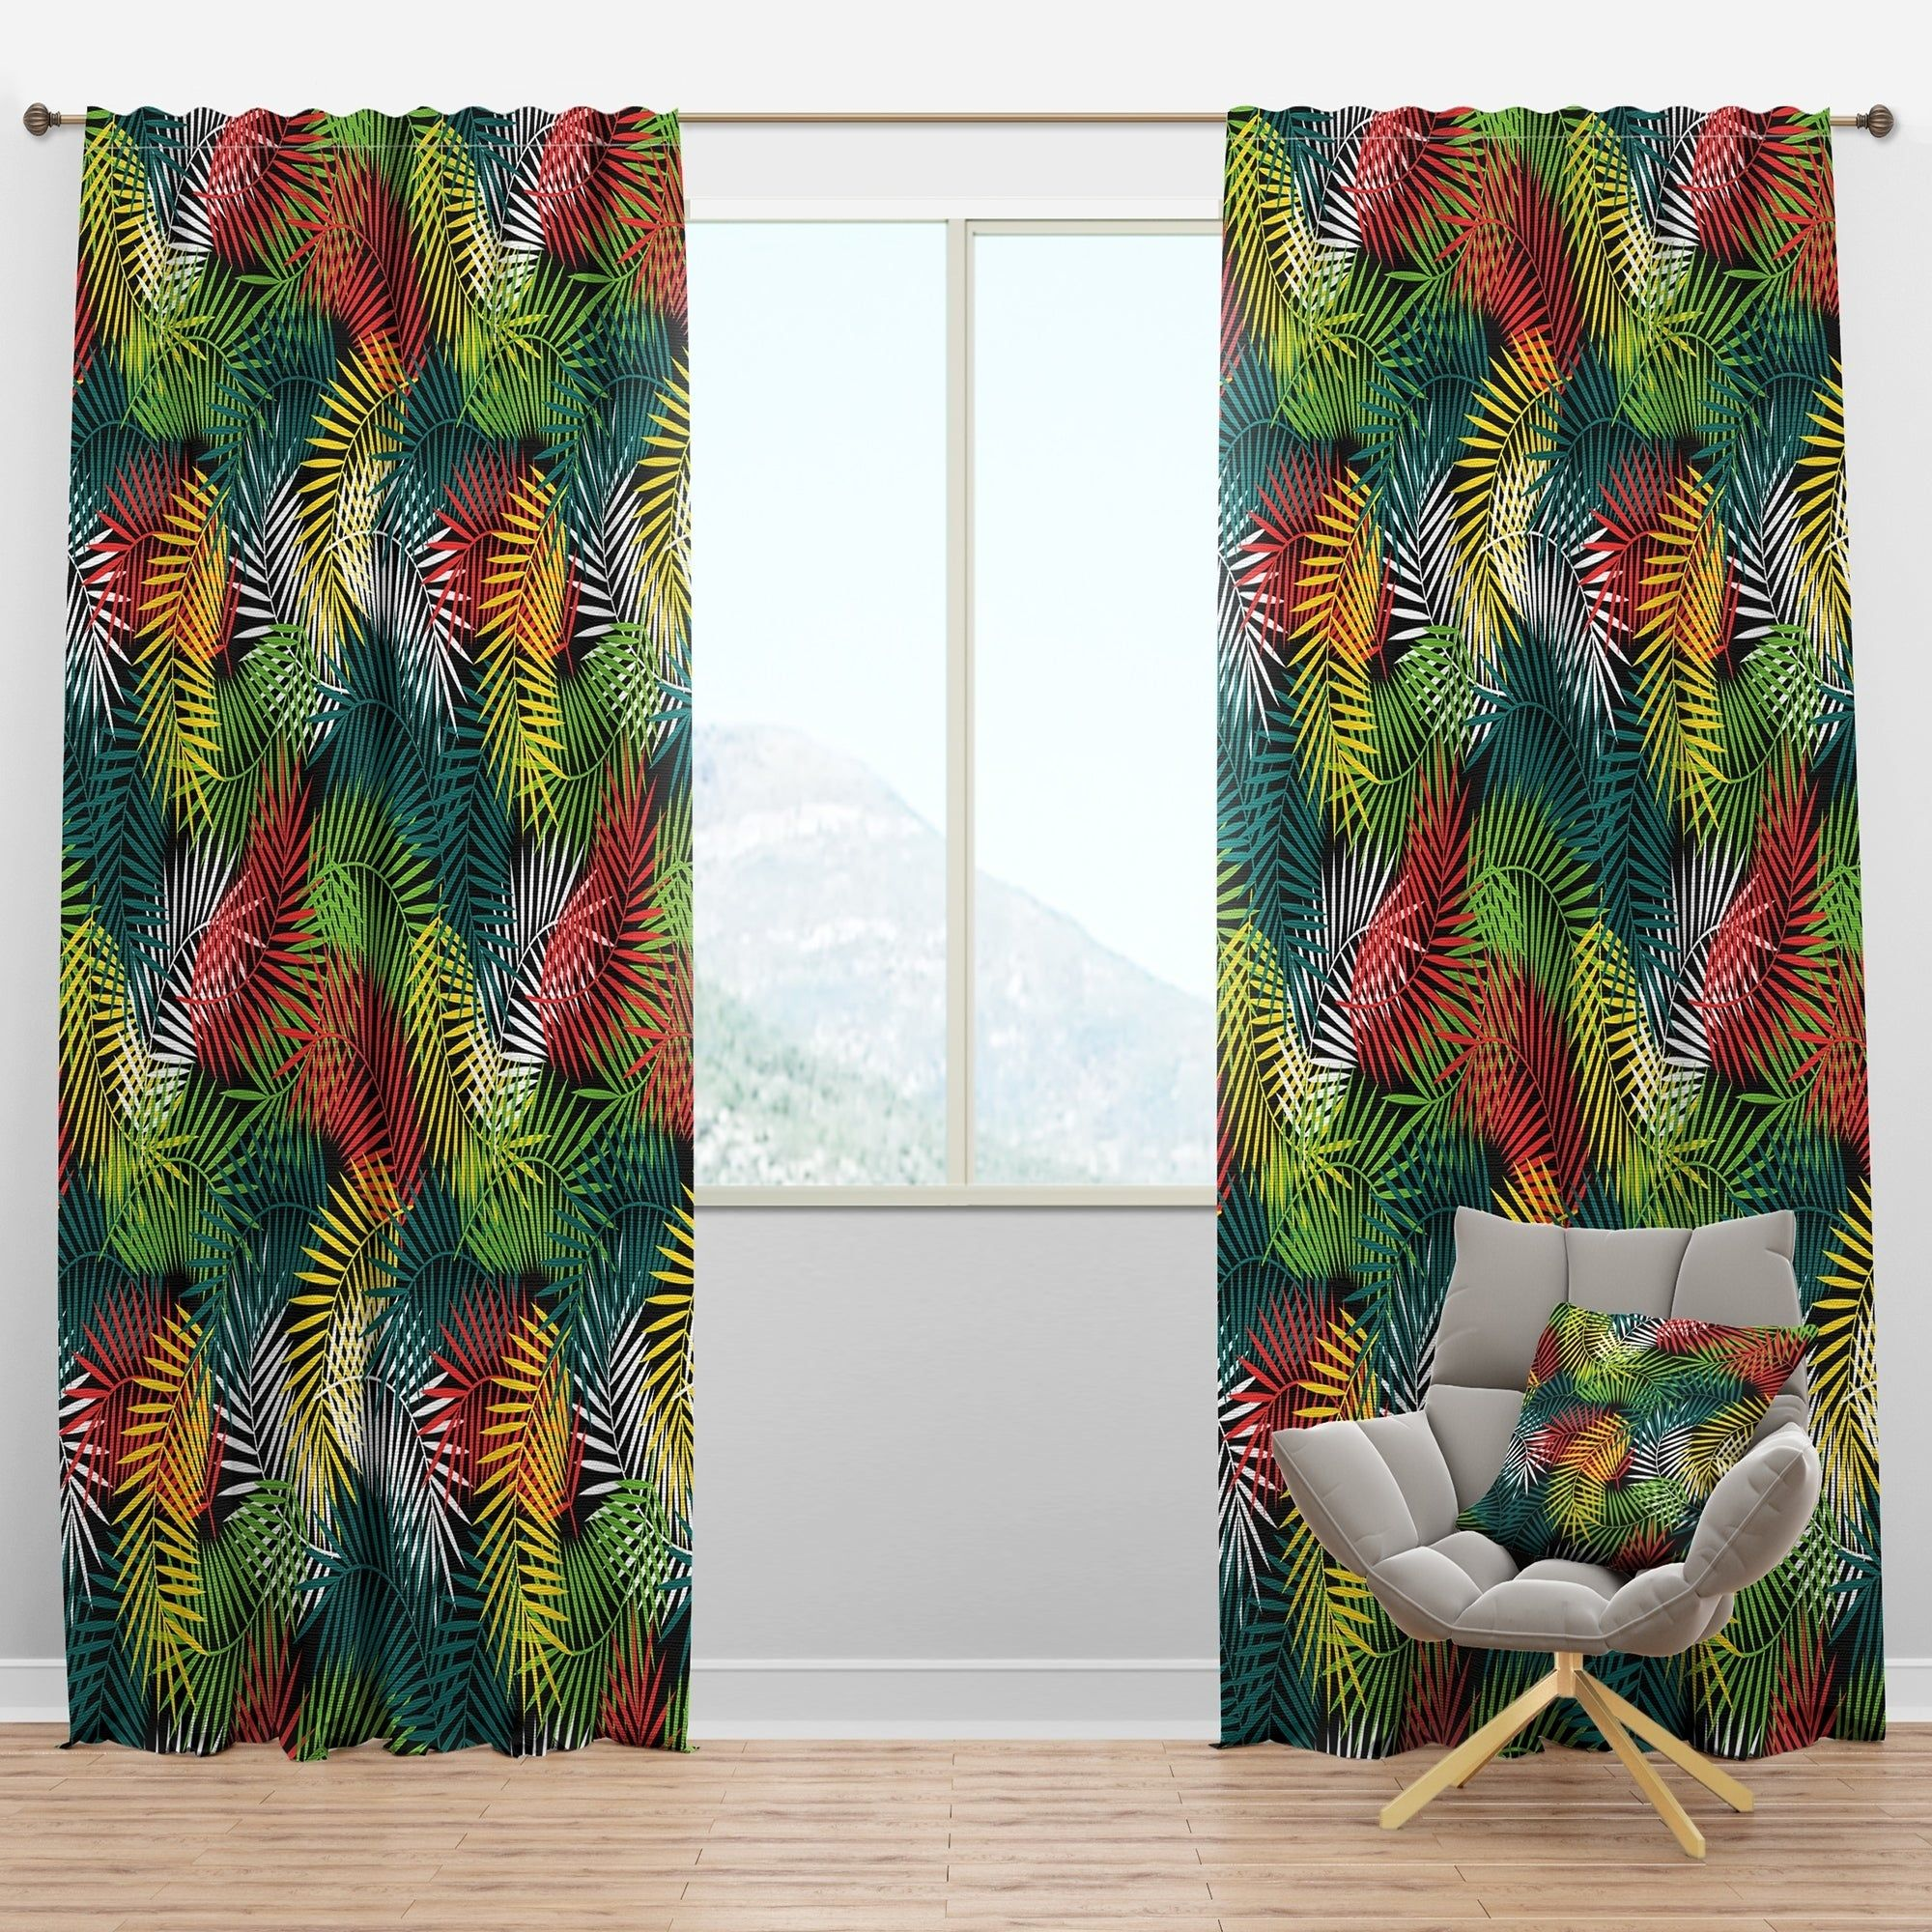 Designart Tropical Pattern With Stylized Coconut Palm Leaves